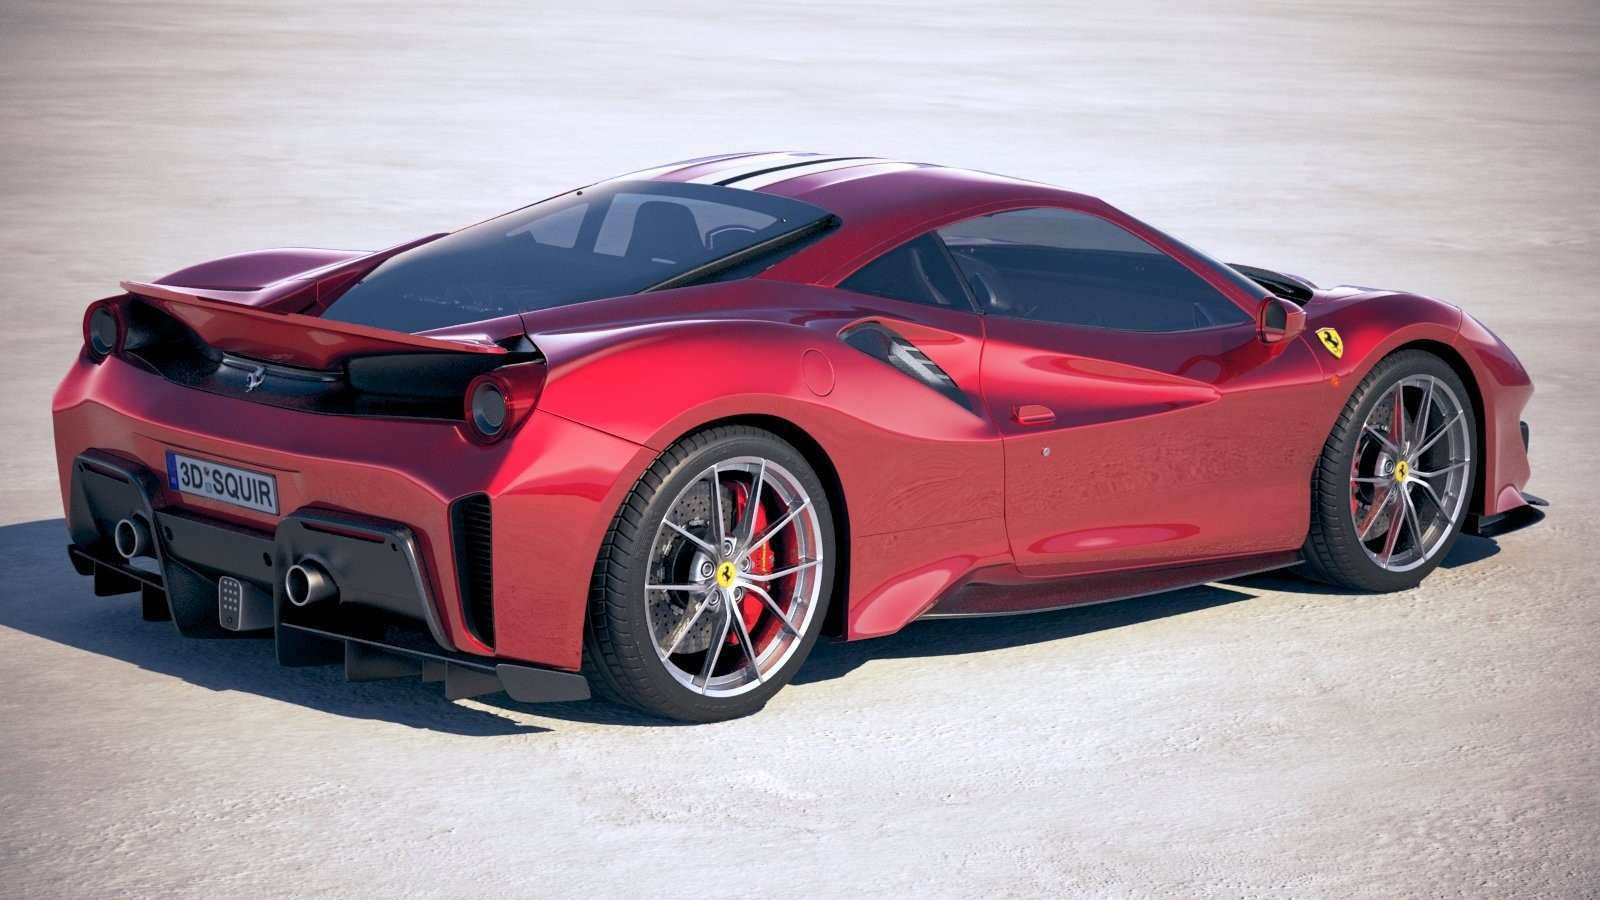 90 New 2019 Ferrari 488 Pista For Sale Price And Release Date